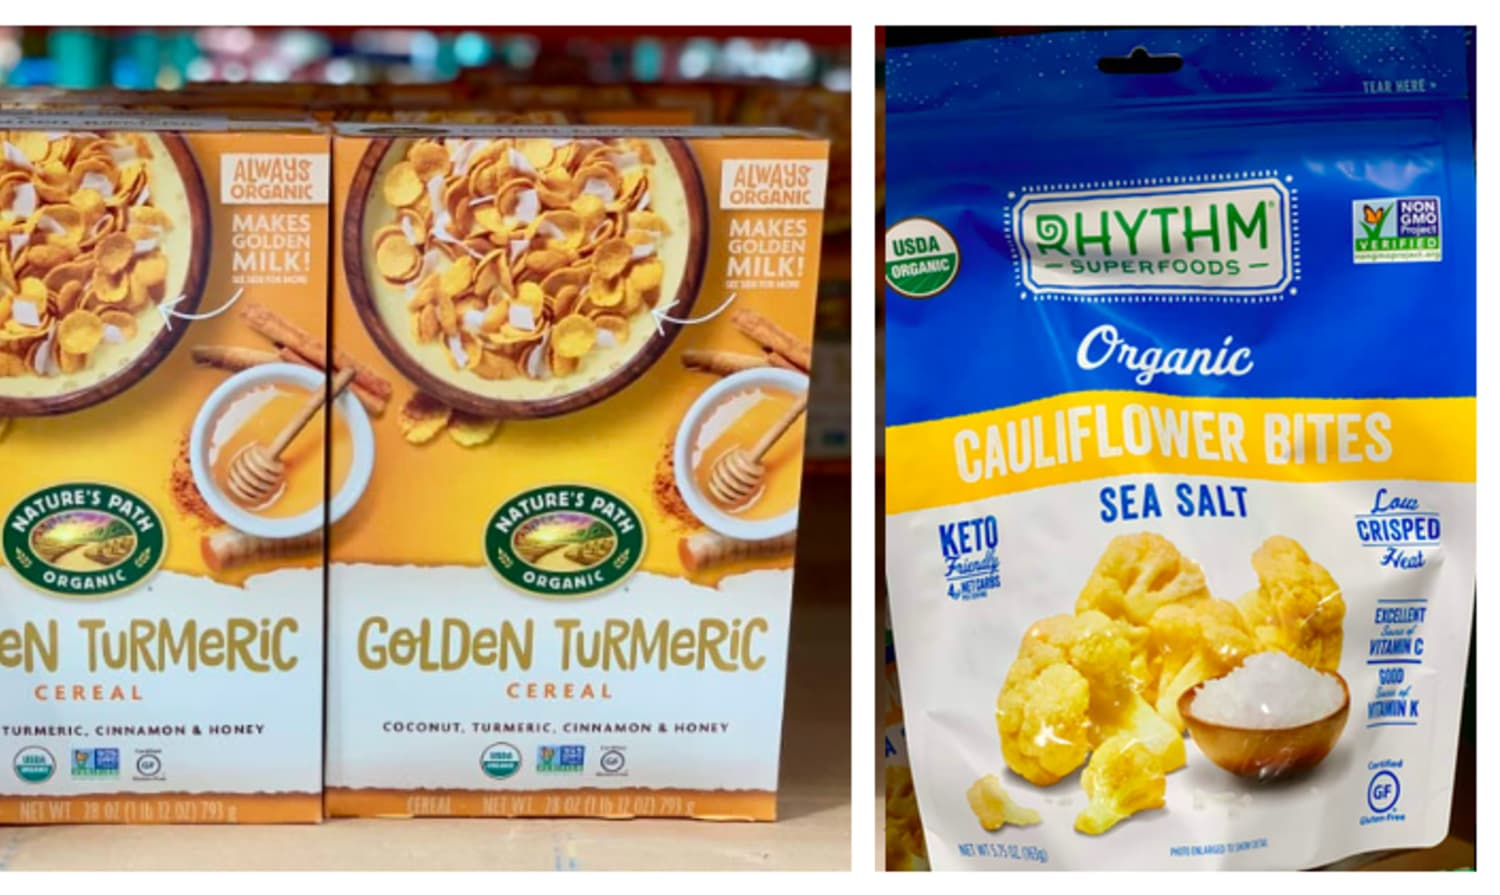 10 Trendy, Healthy New Grocery Finds We Just Spotted at Costco